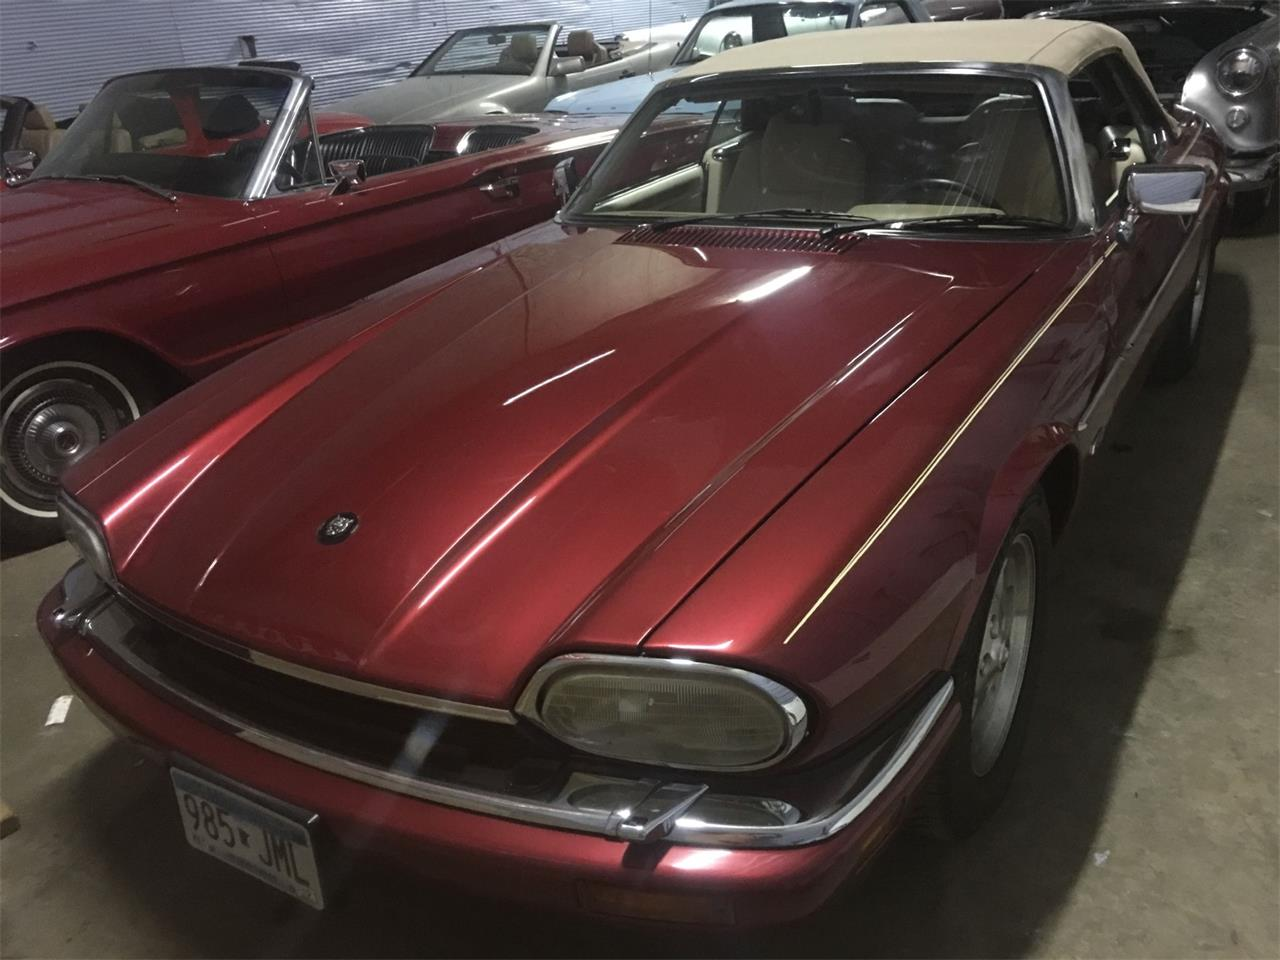 1995 Jaguar XJS for sale in Annandale, MN – photo 37